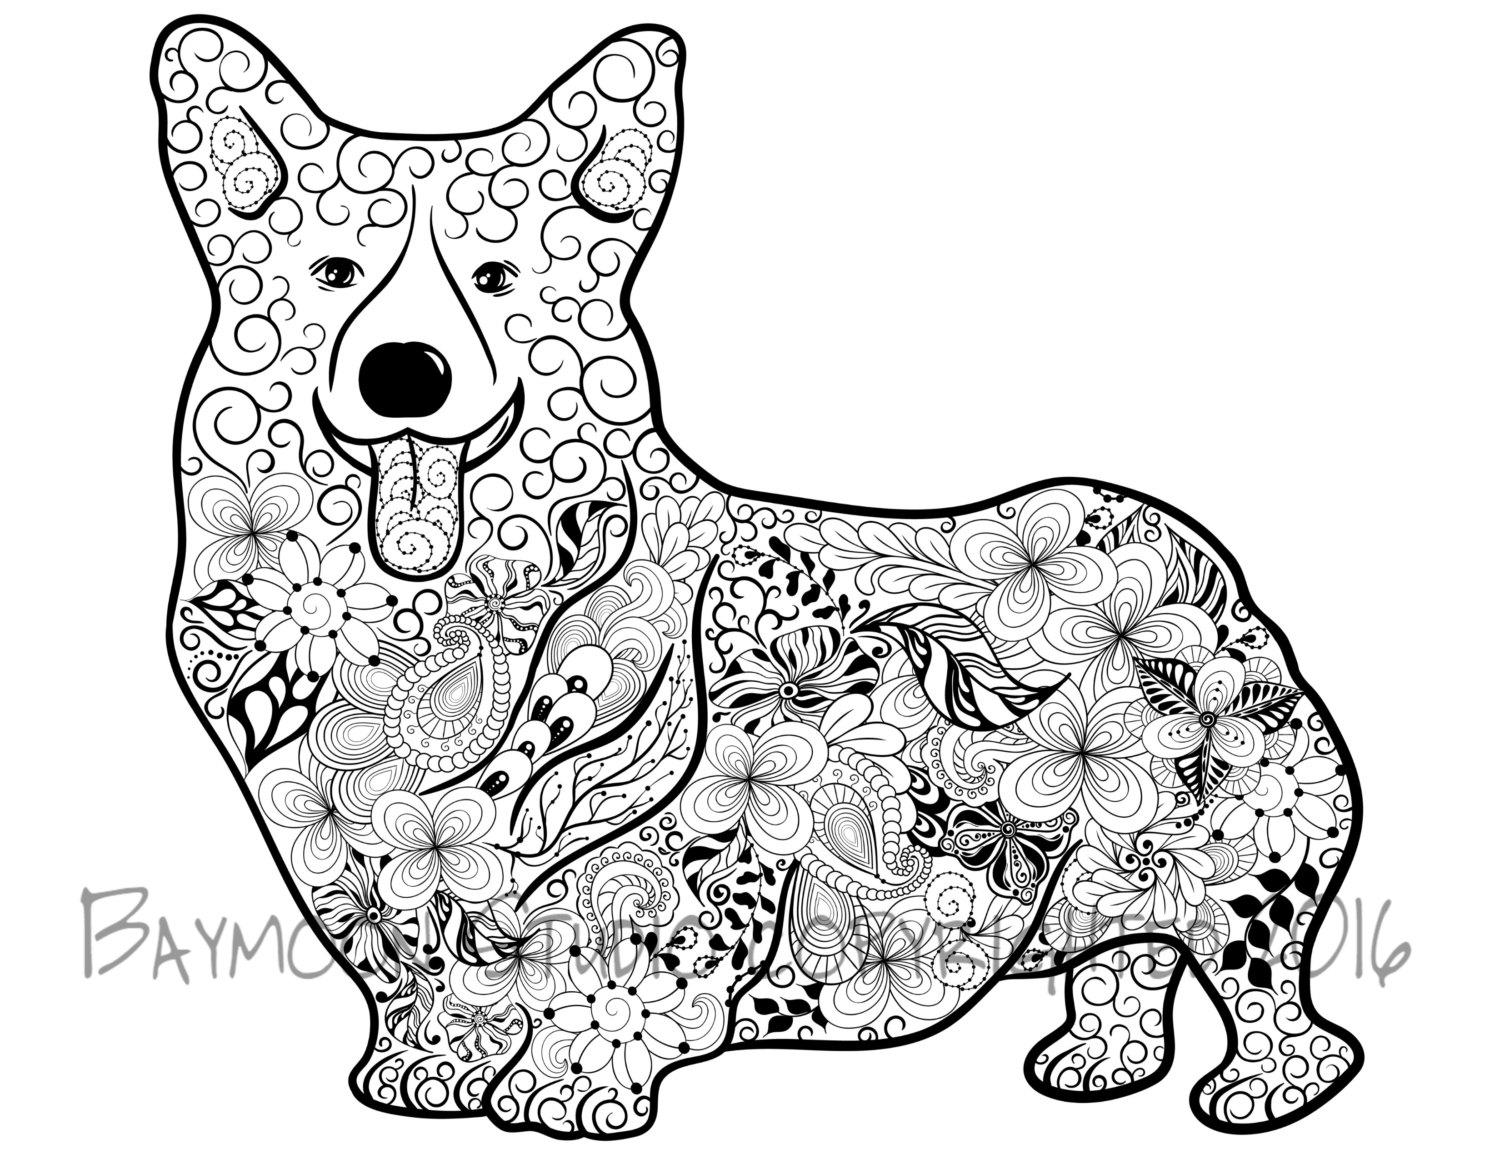 corgi coloring pages - pembroke welsh corgi coloring page